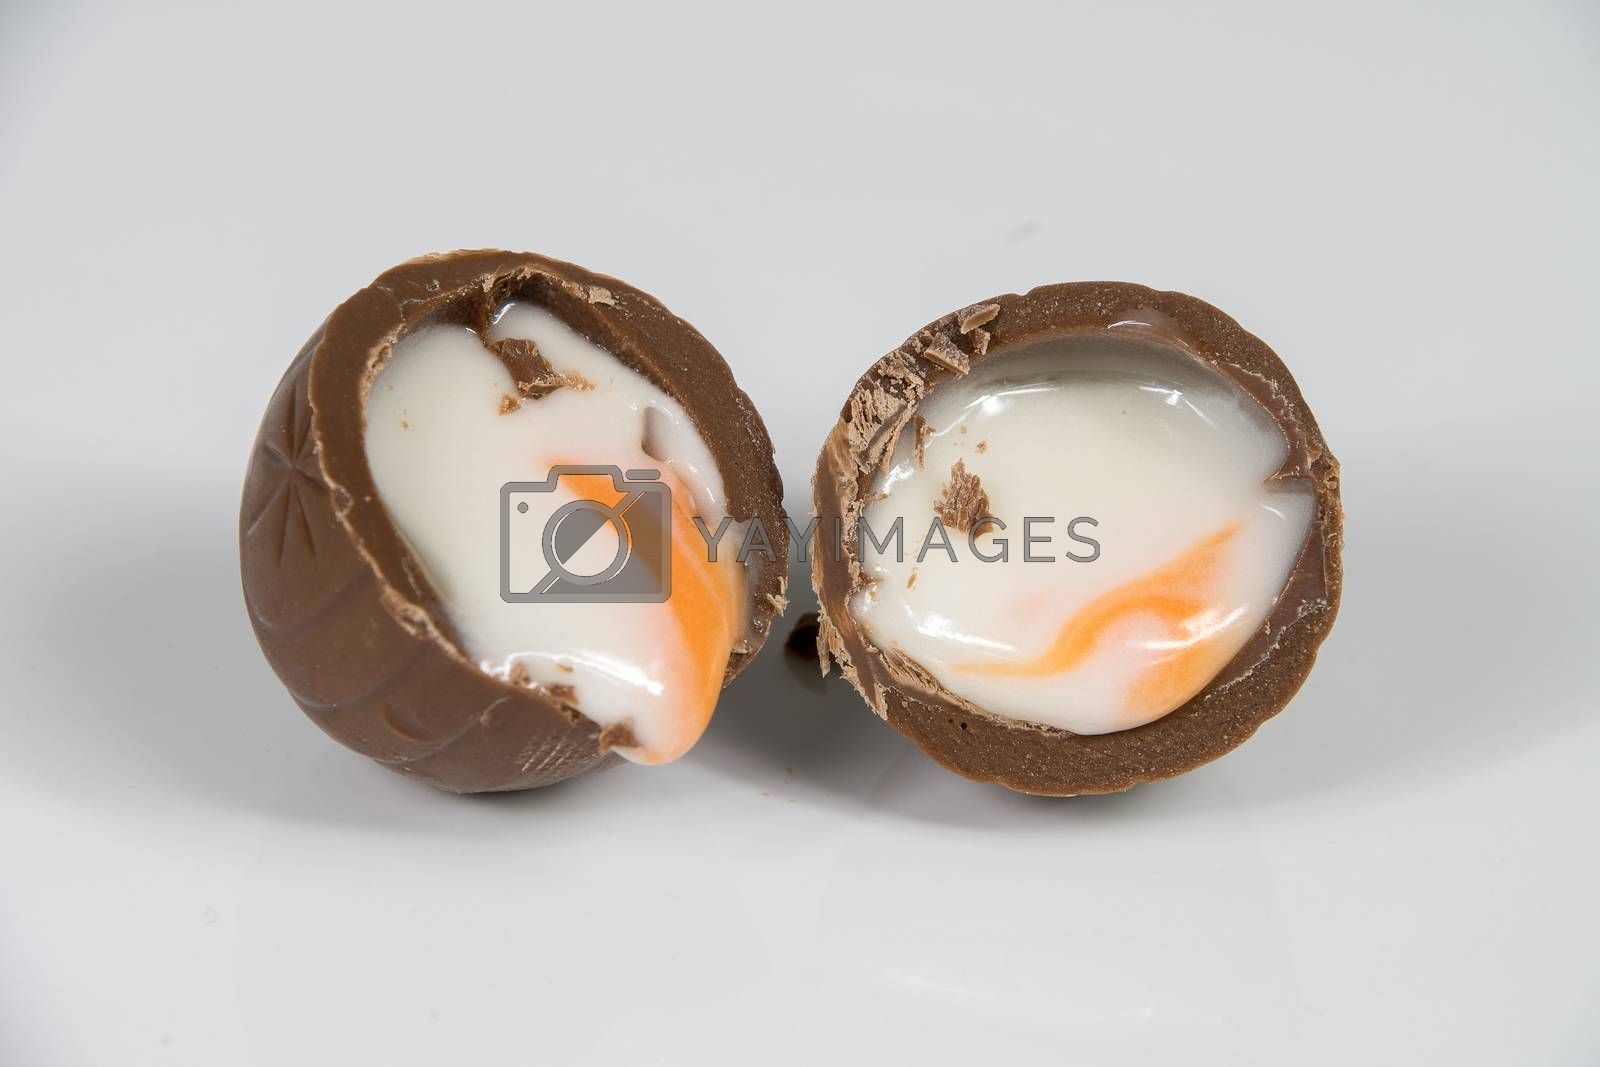 Chocolate Easter egg with white fondant